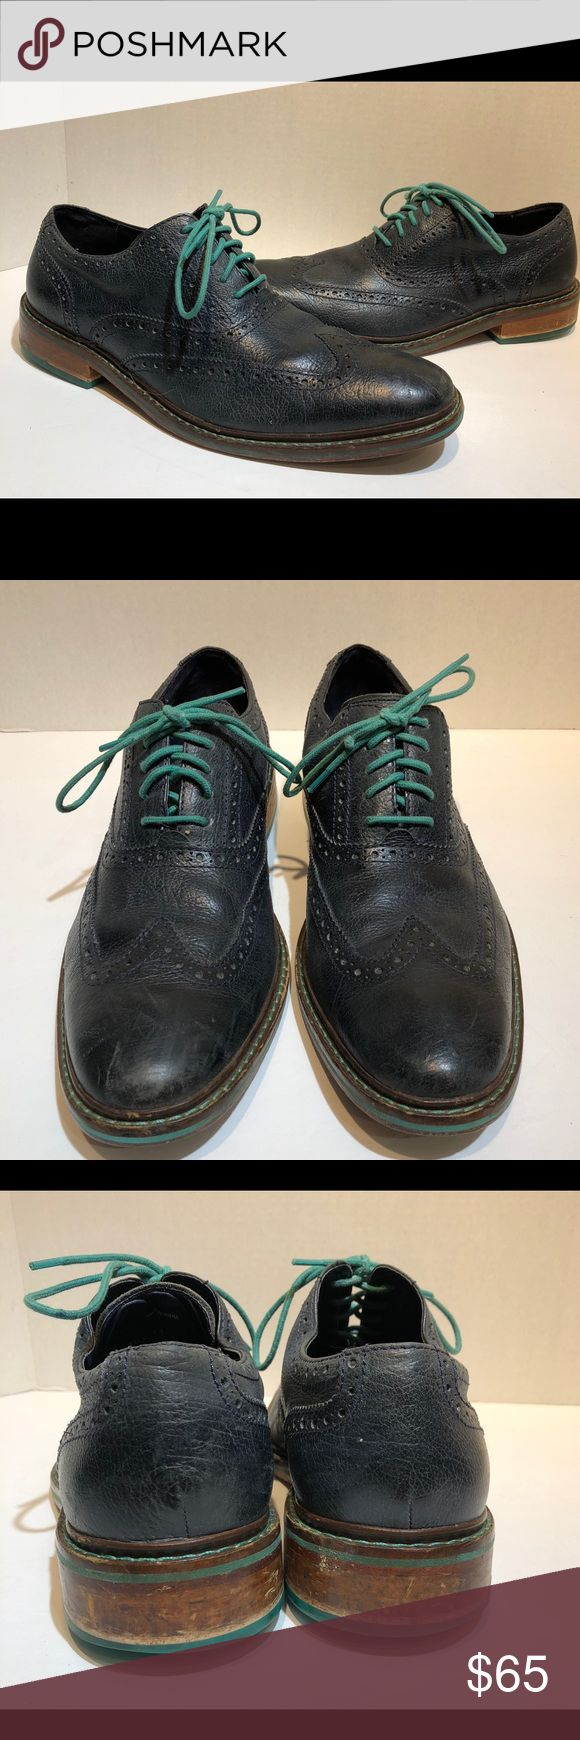 cole haan mens wing tip Oxford shoes Size 11 cole haan mens wing tip Oxford shoes Size 11 M Cole Haan Shoes Oxfords & Derbys